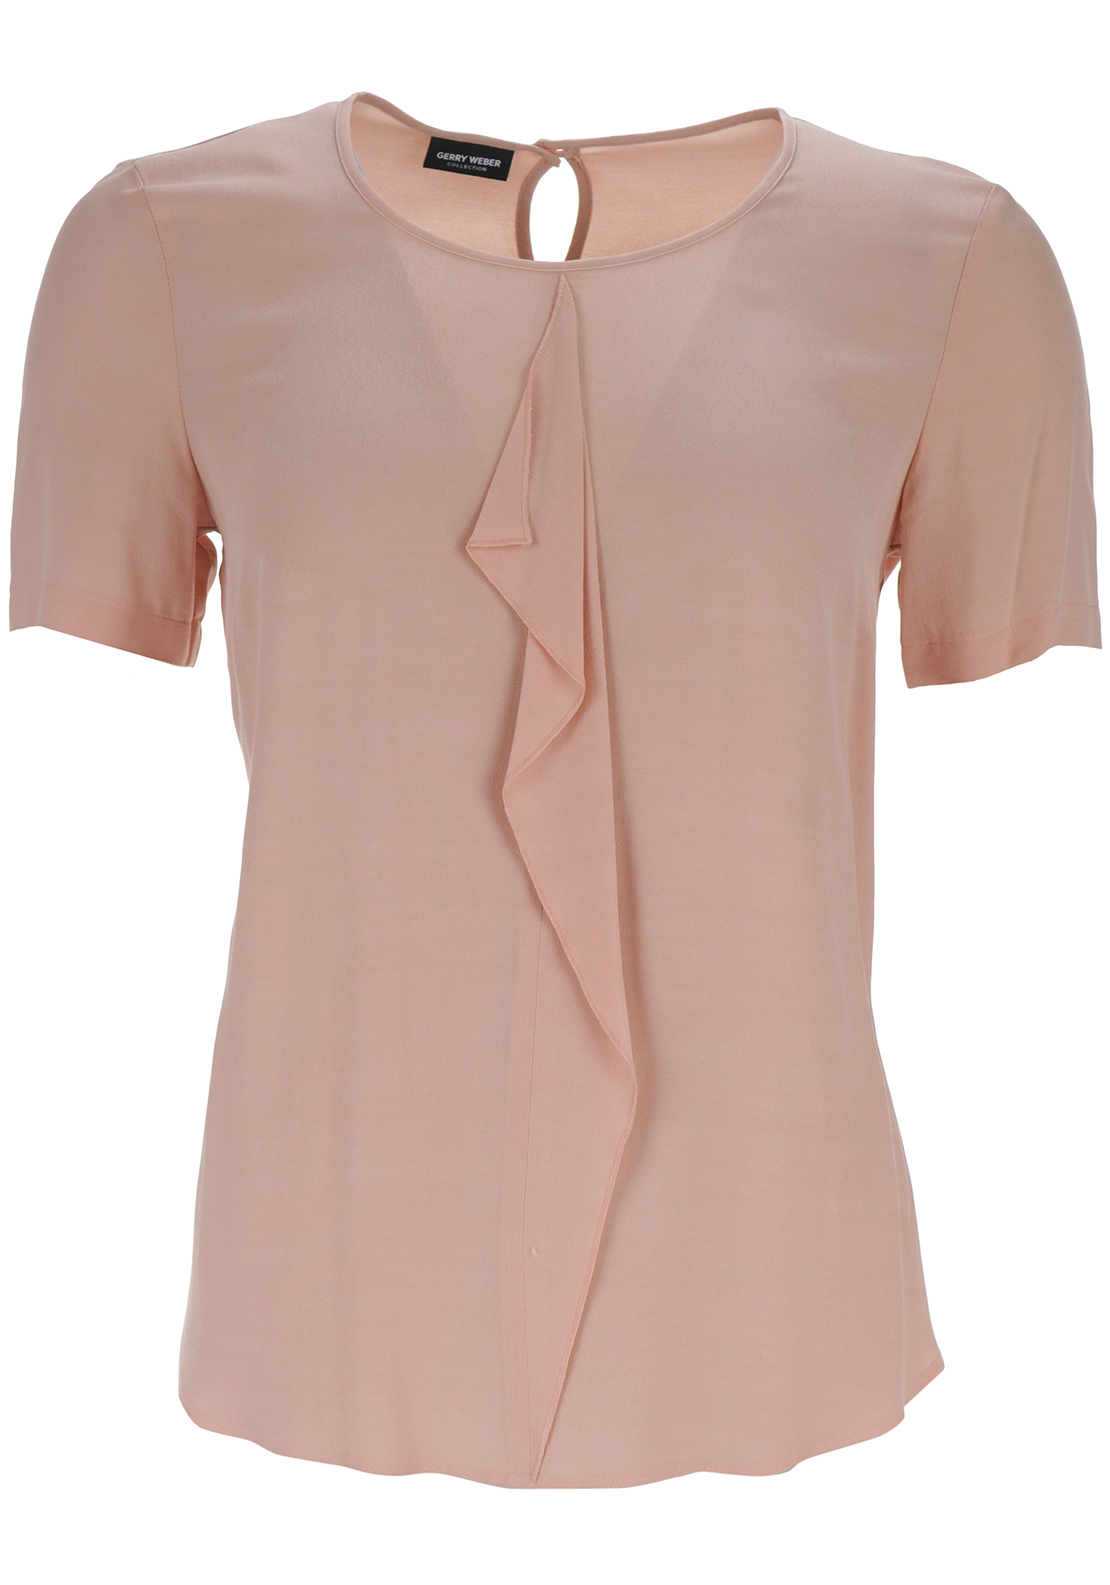 Gerry Weber Ruffle Trim Crepe Top, Peach